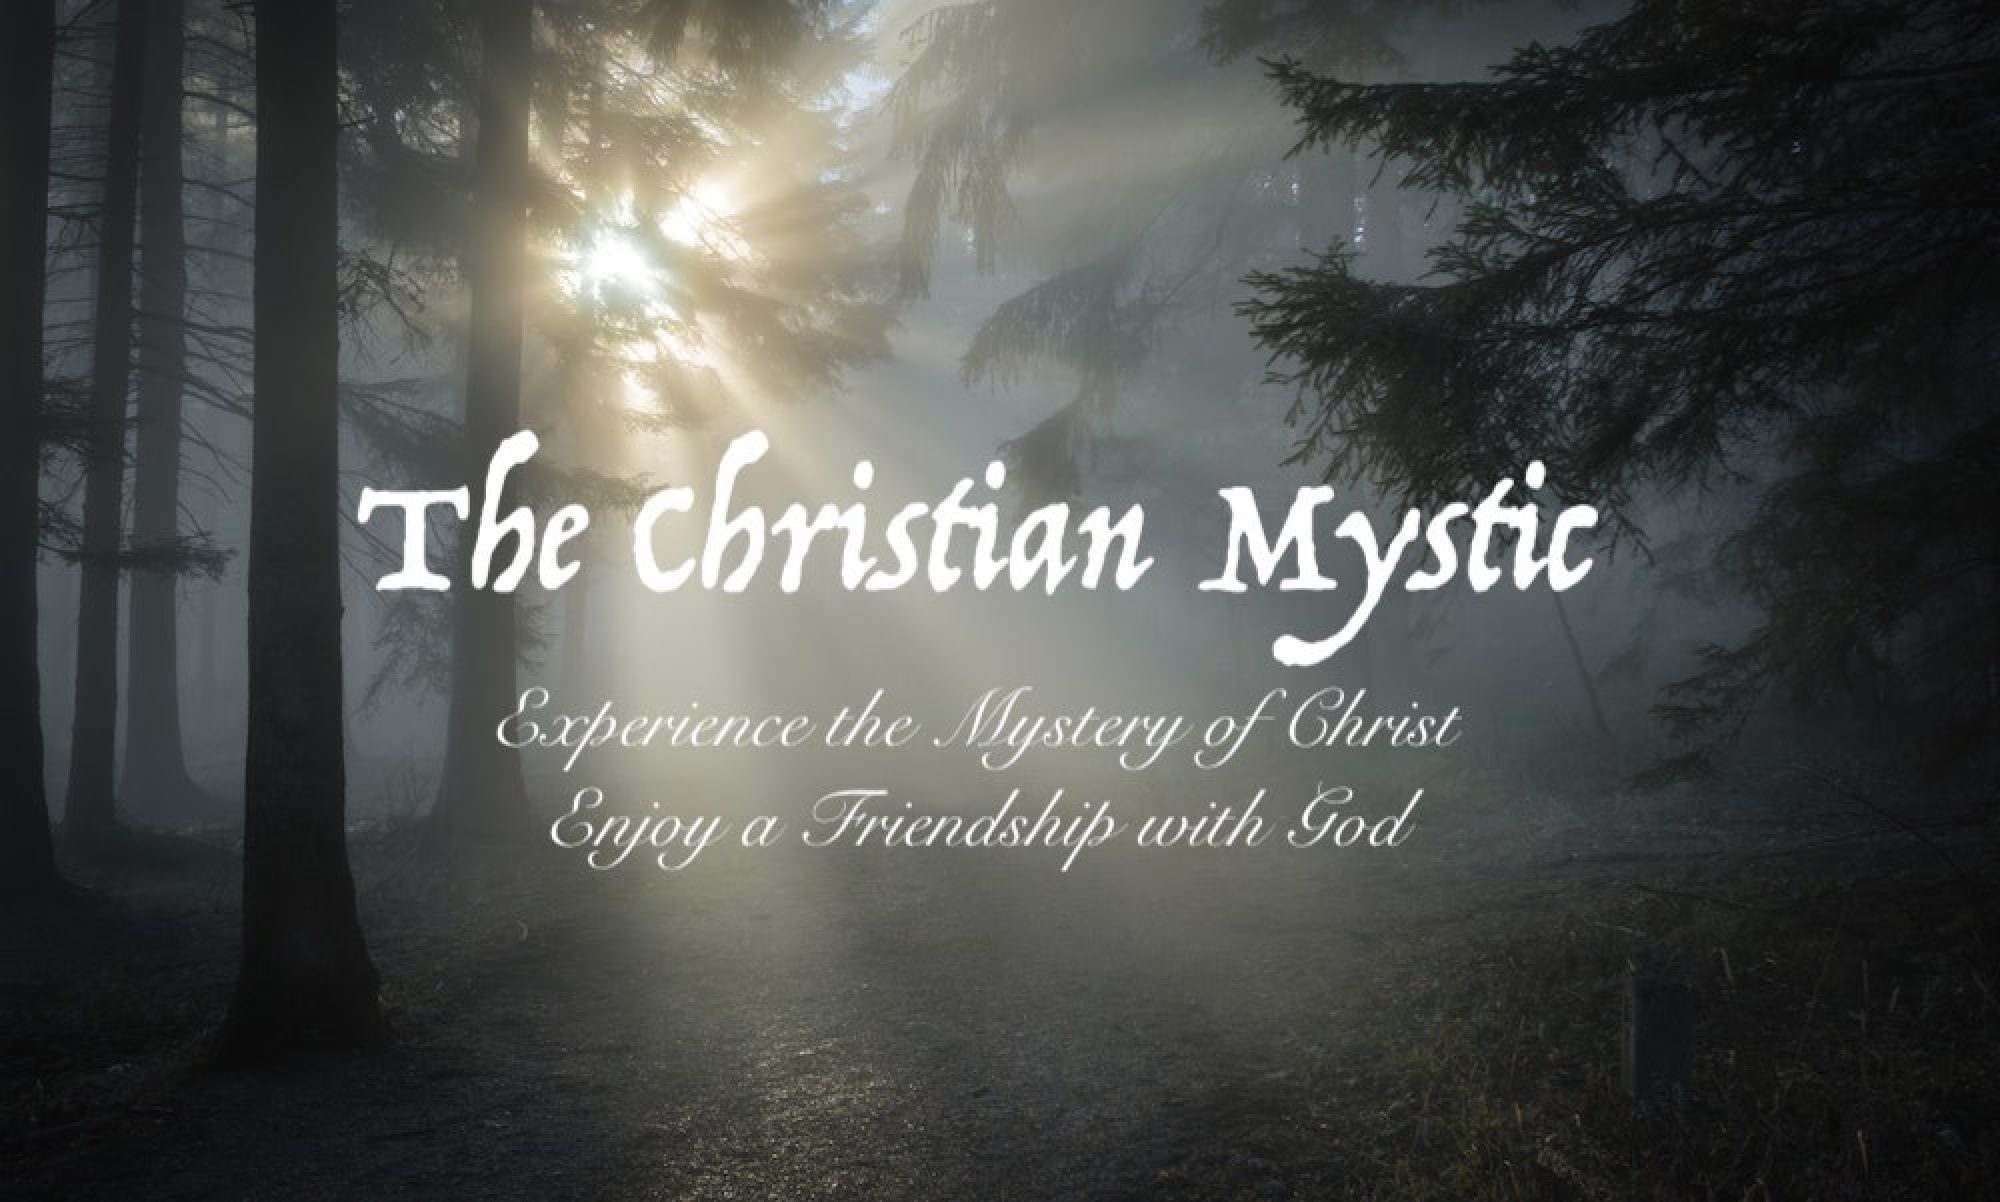 The Christian Mystic